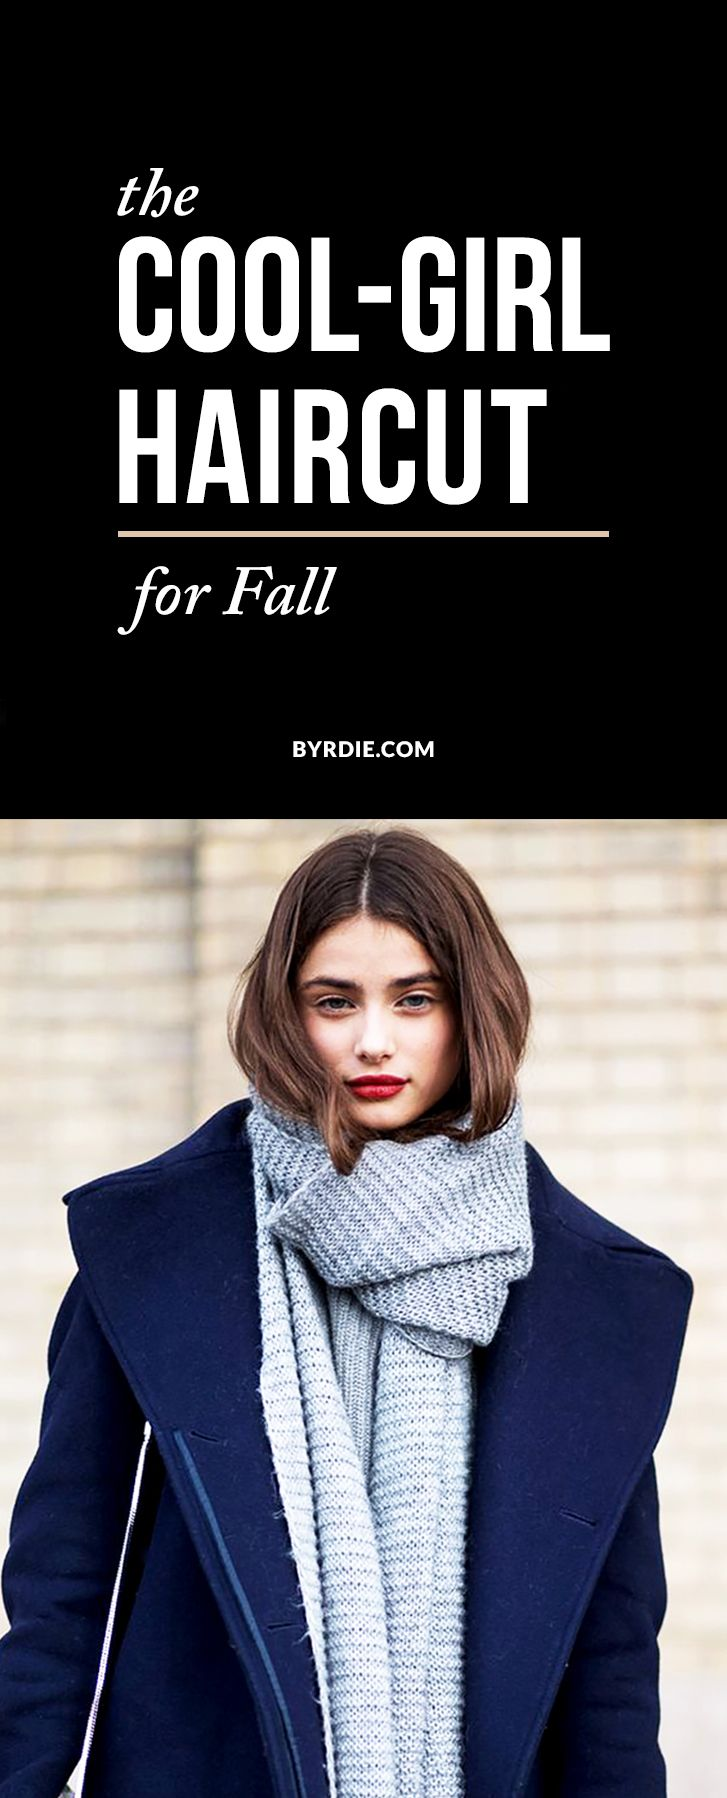 The cool-girl haircut you're about to see everywhere this fall